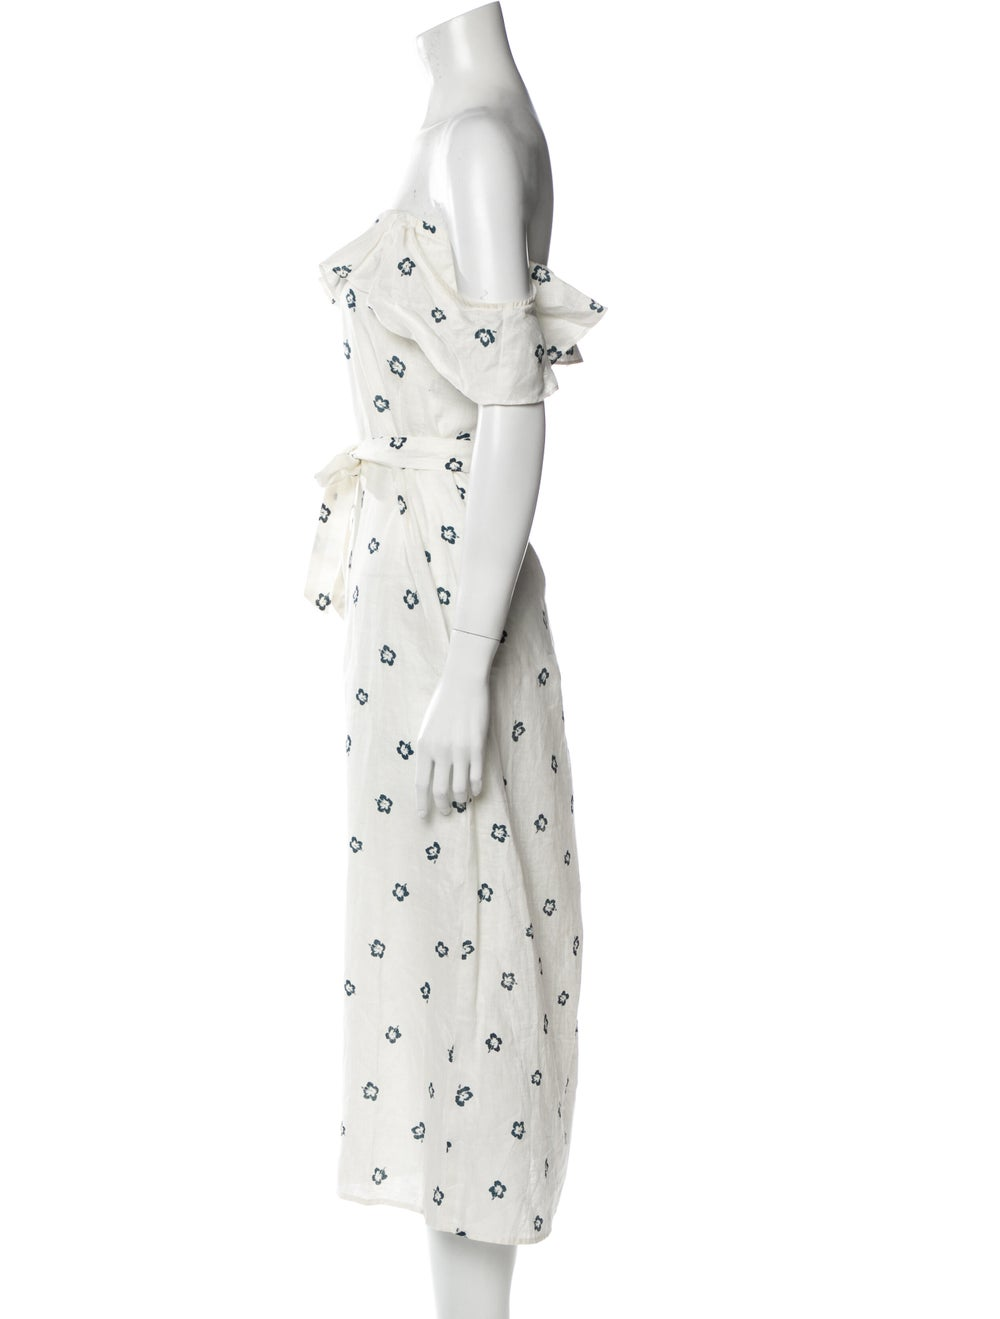 Reformation Linen Long Dress White - image 2